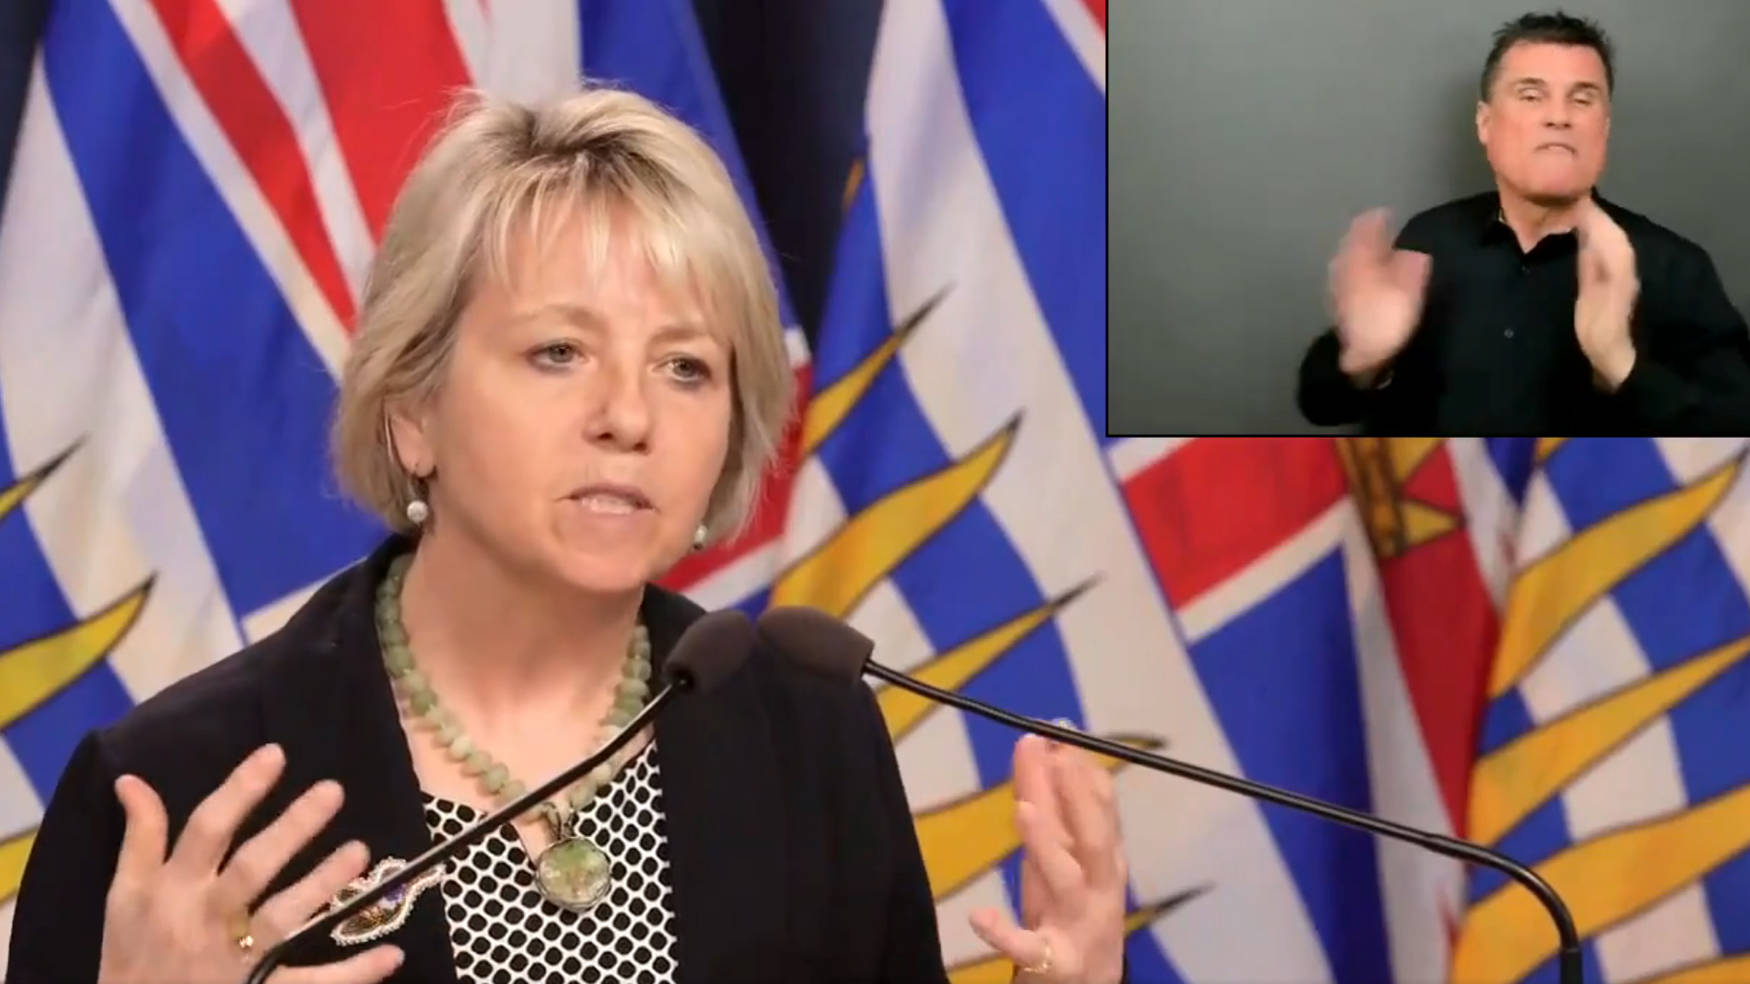 B.C. provincial health officer Dr. Bonnie Henry speaks at a press conference Monday, April 18. (B.C. Government image)